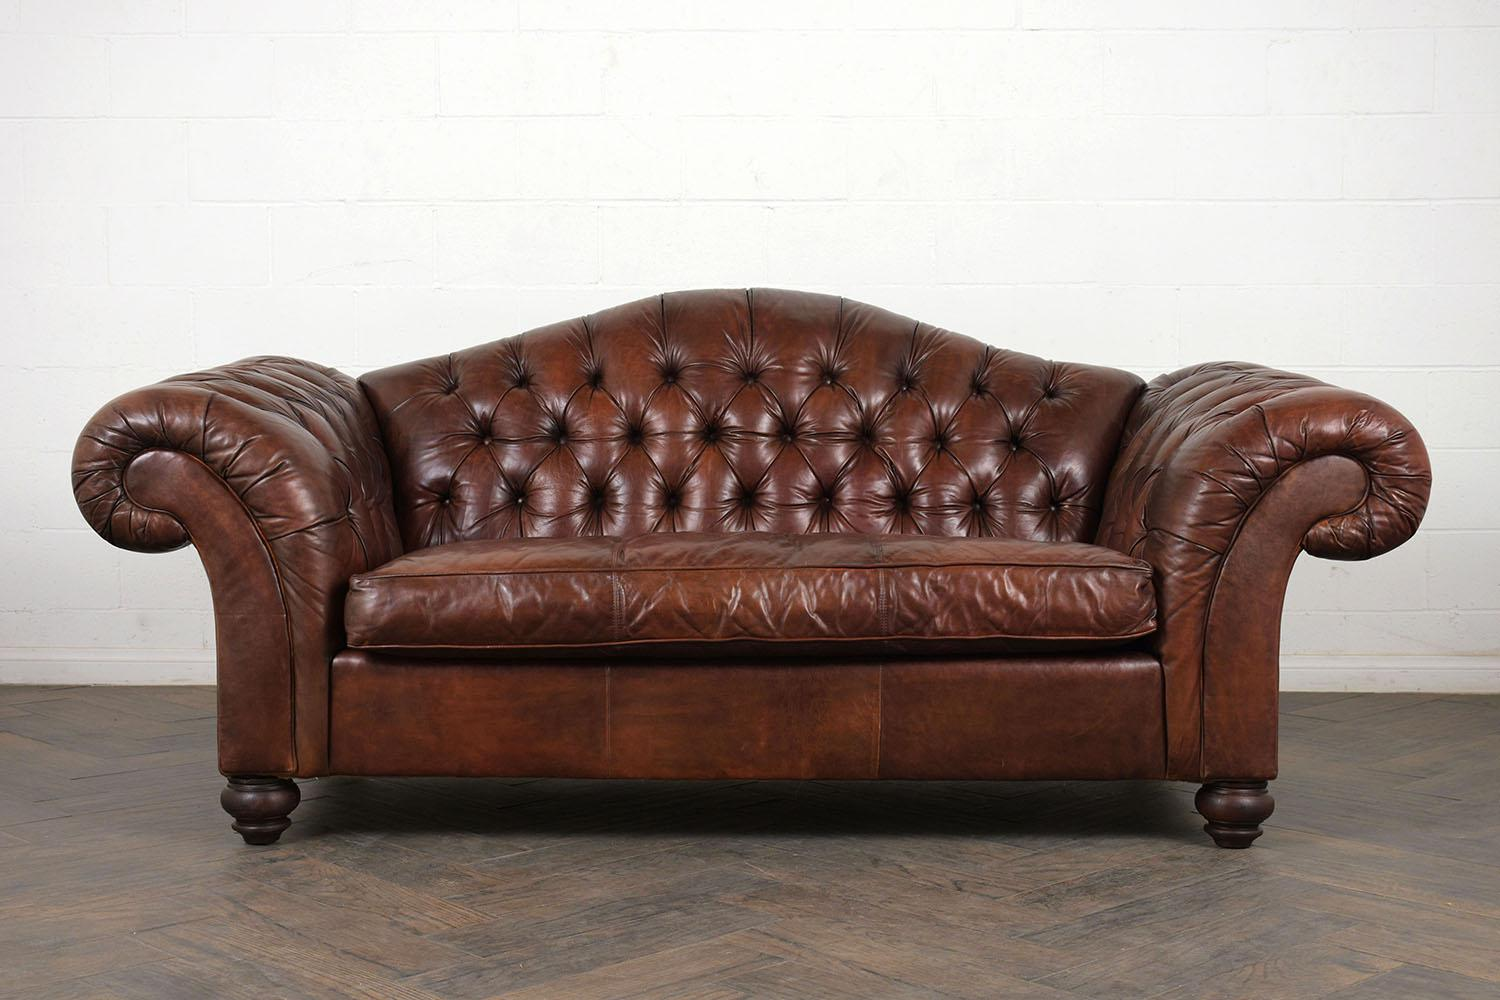 English Traditional Vintage Chesterfield Tufted Leather Sofa For Sale    Image 3 Of 10